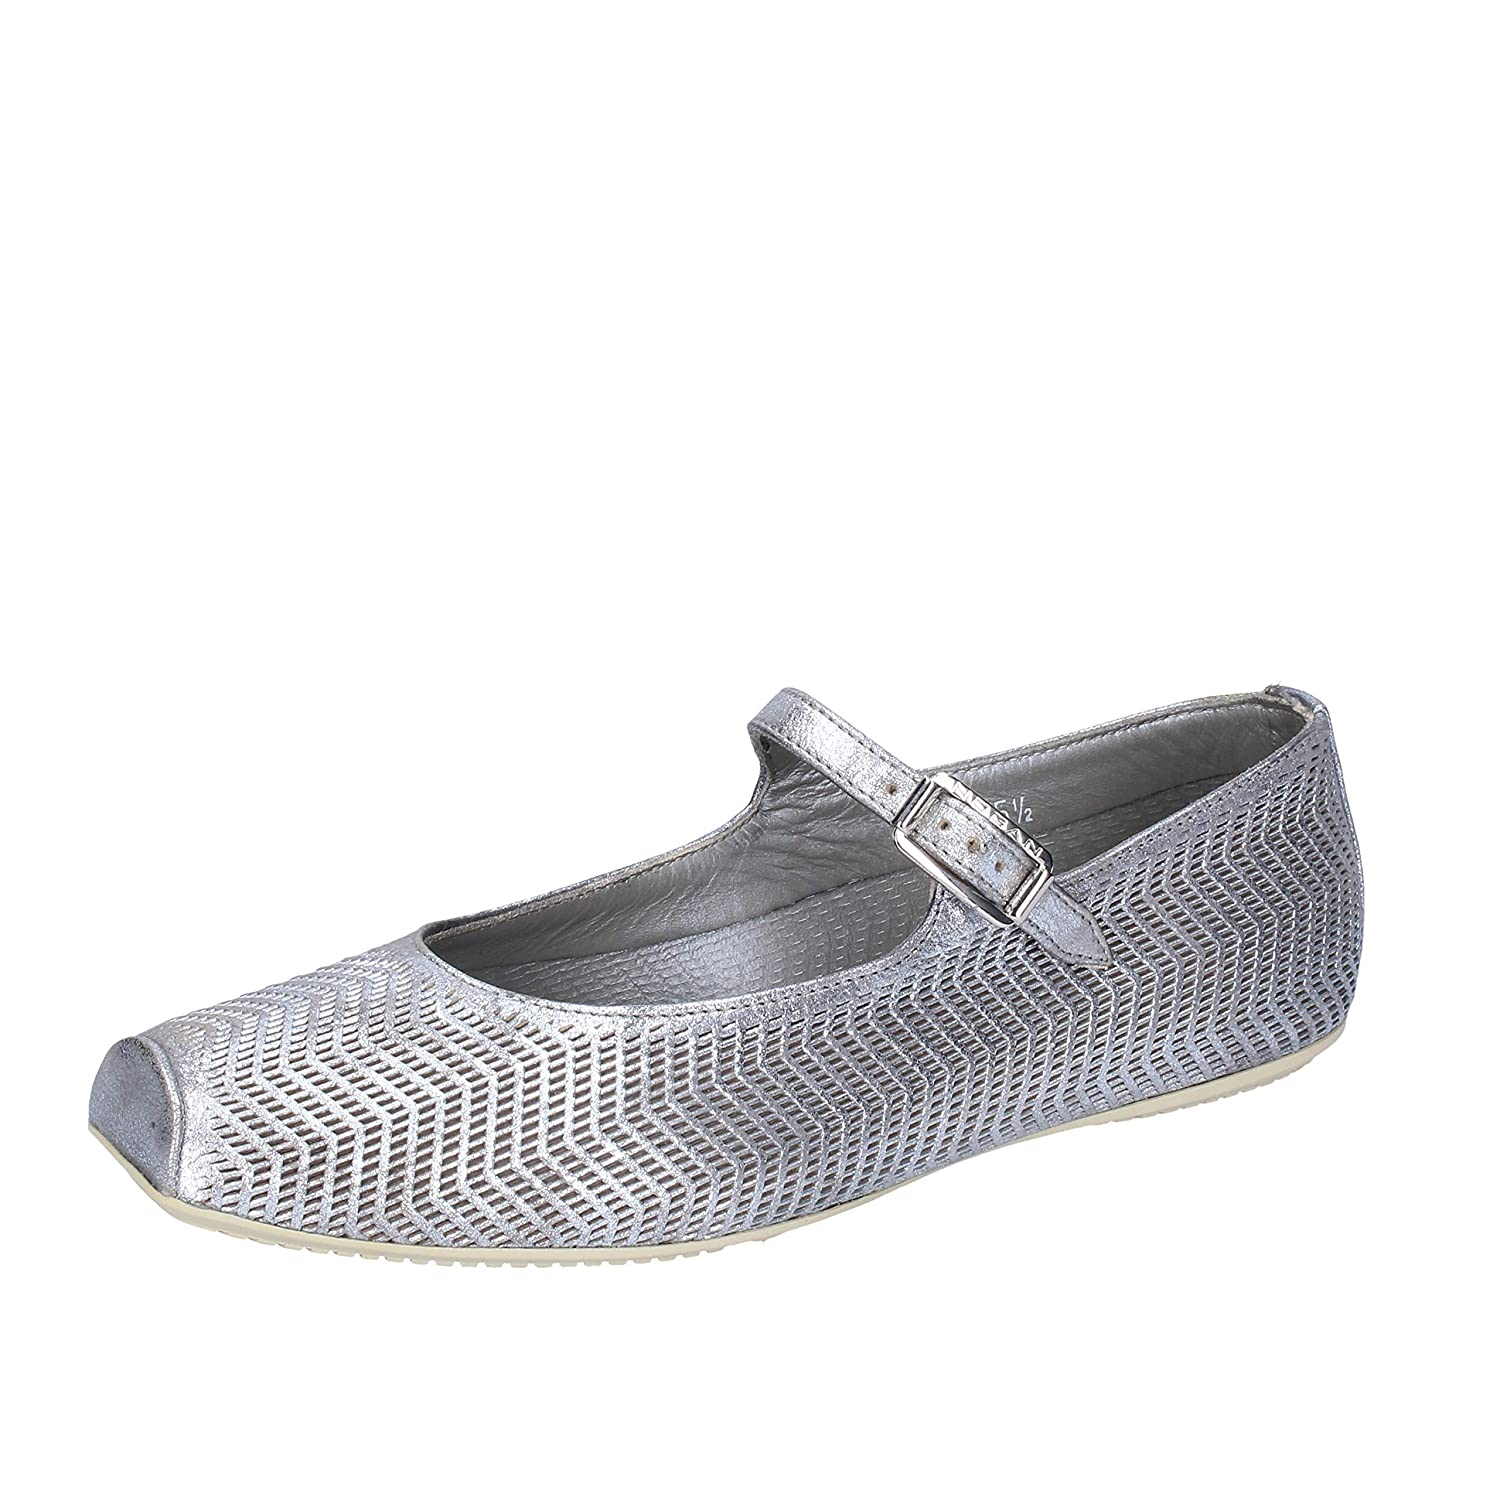 HOGAN Flats-Shoes Womens Leather Silver